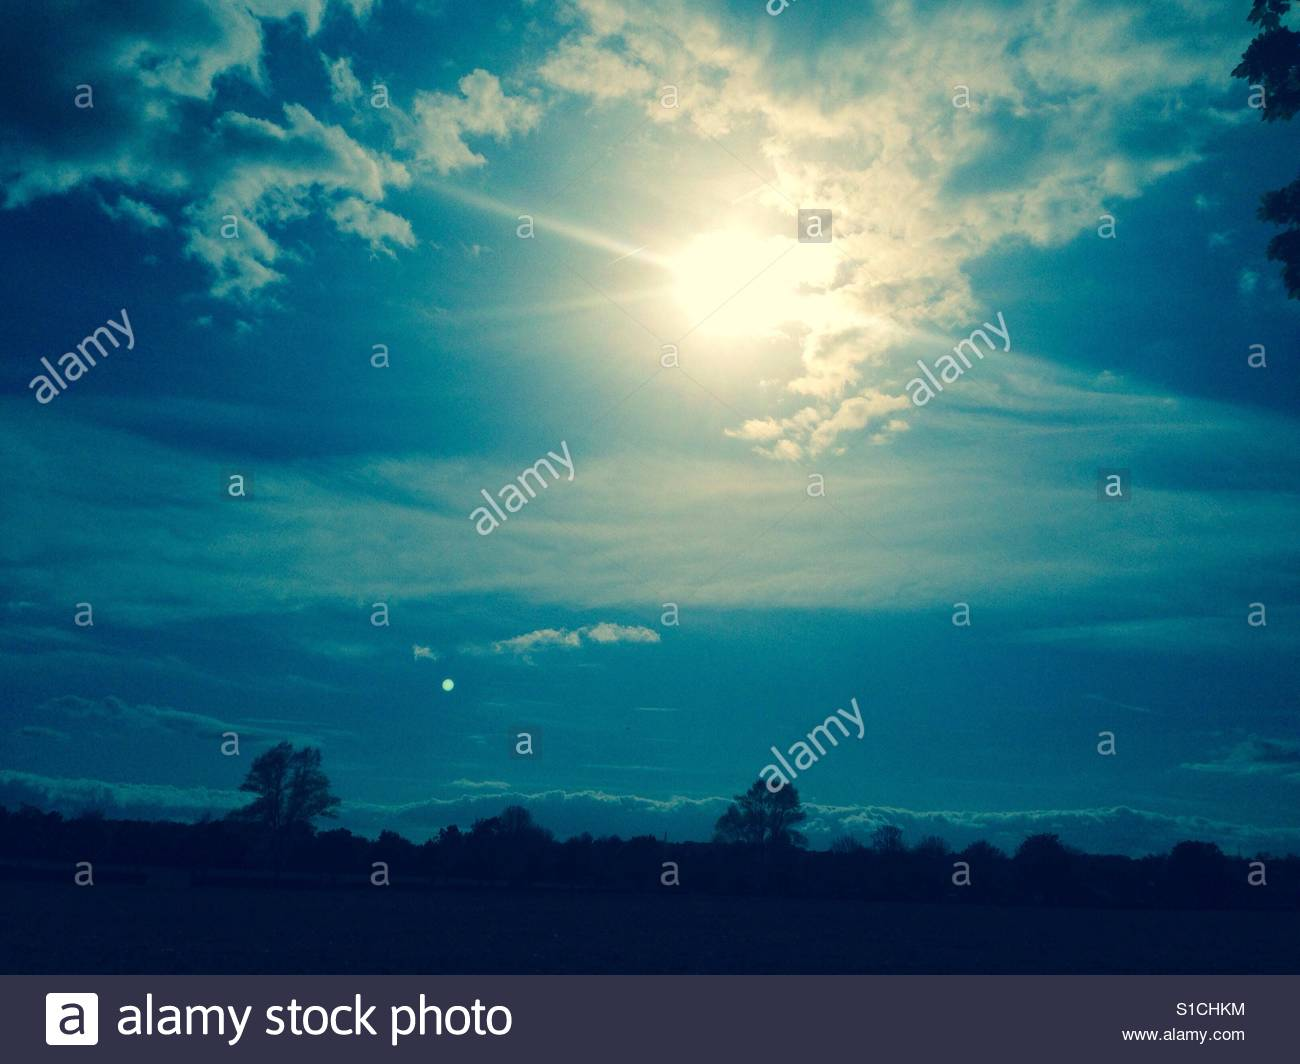 Sun and moon in the sky on a summery day. - Stock Image